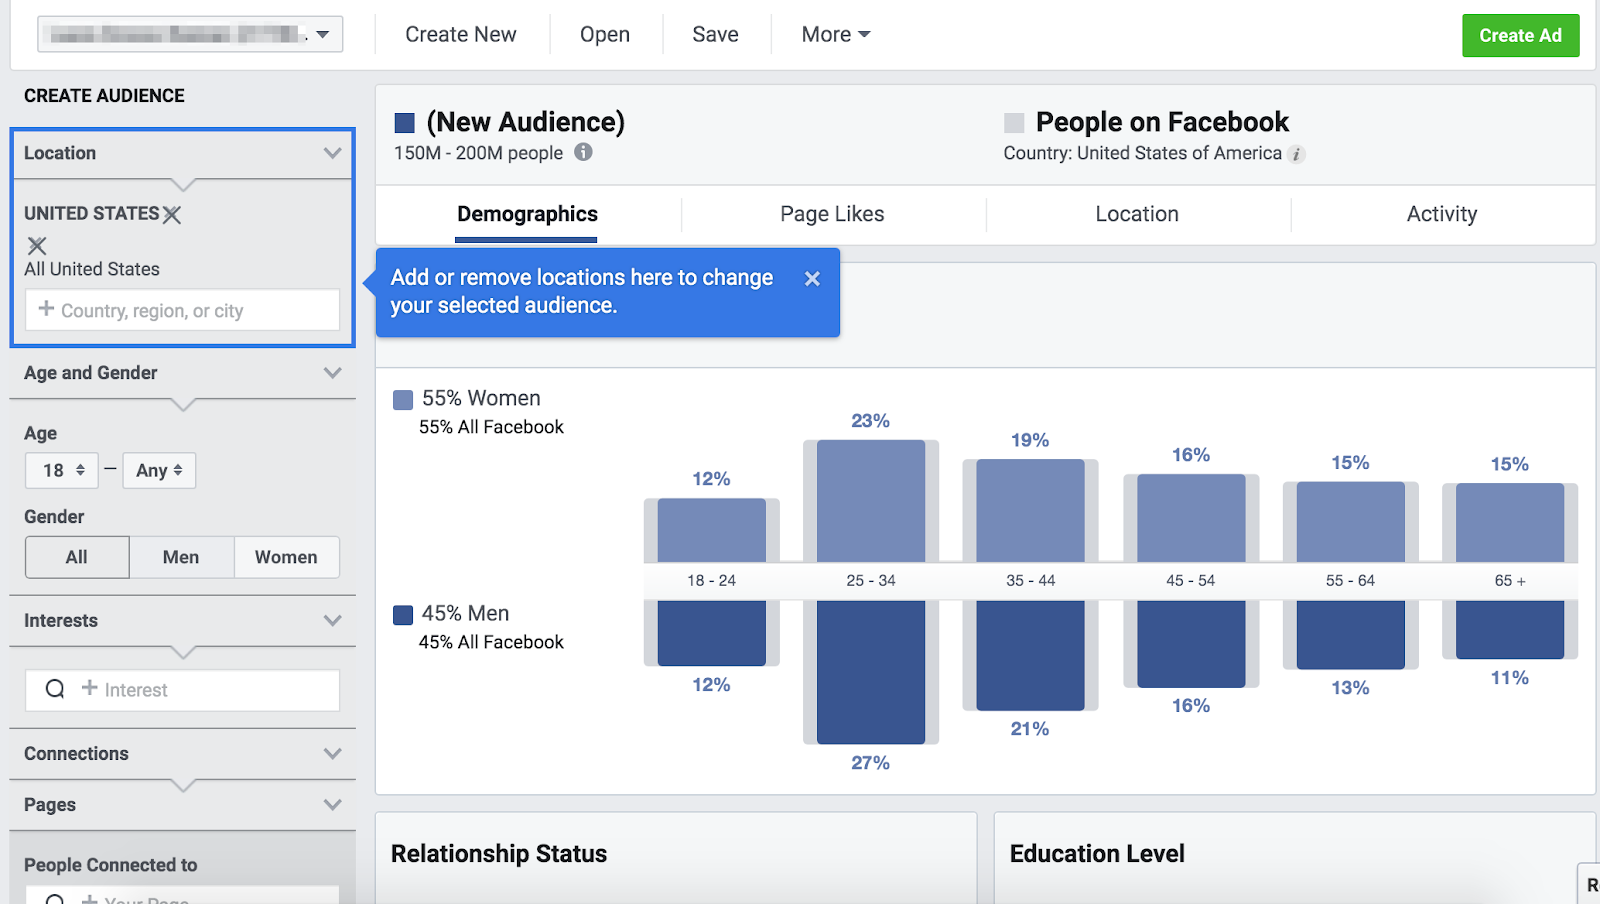 defining audience demographics in Audience Insights